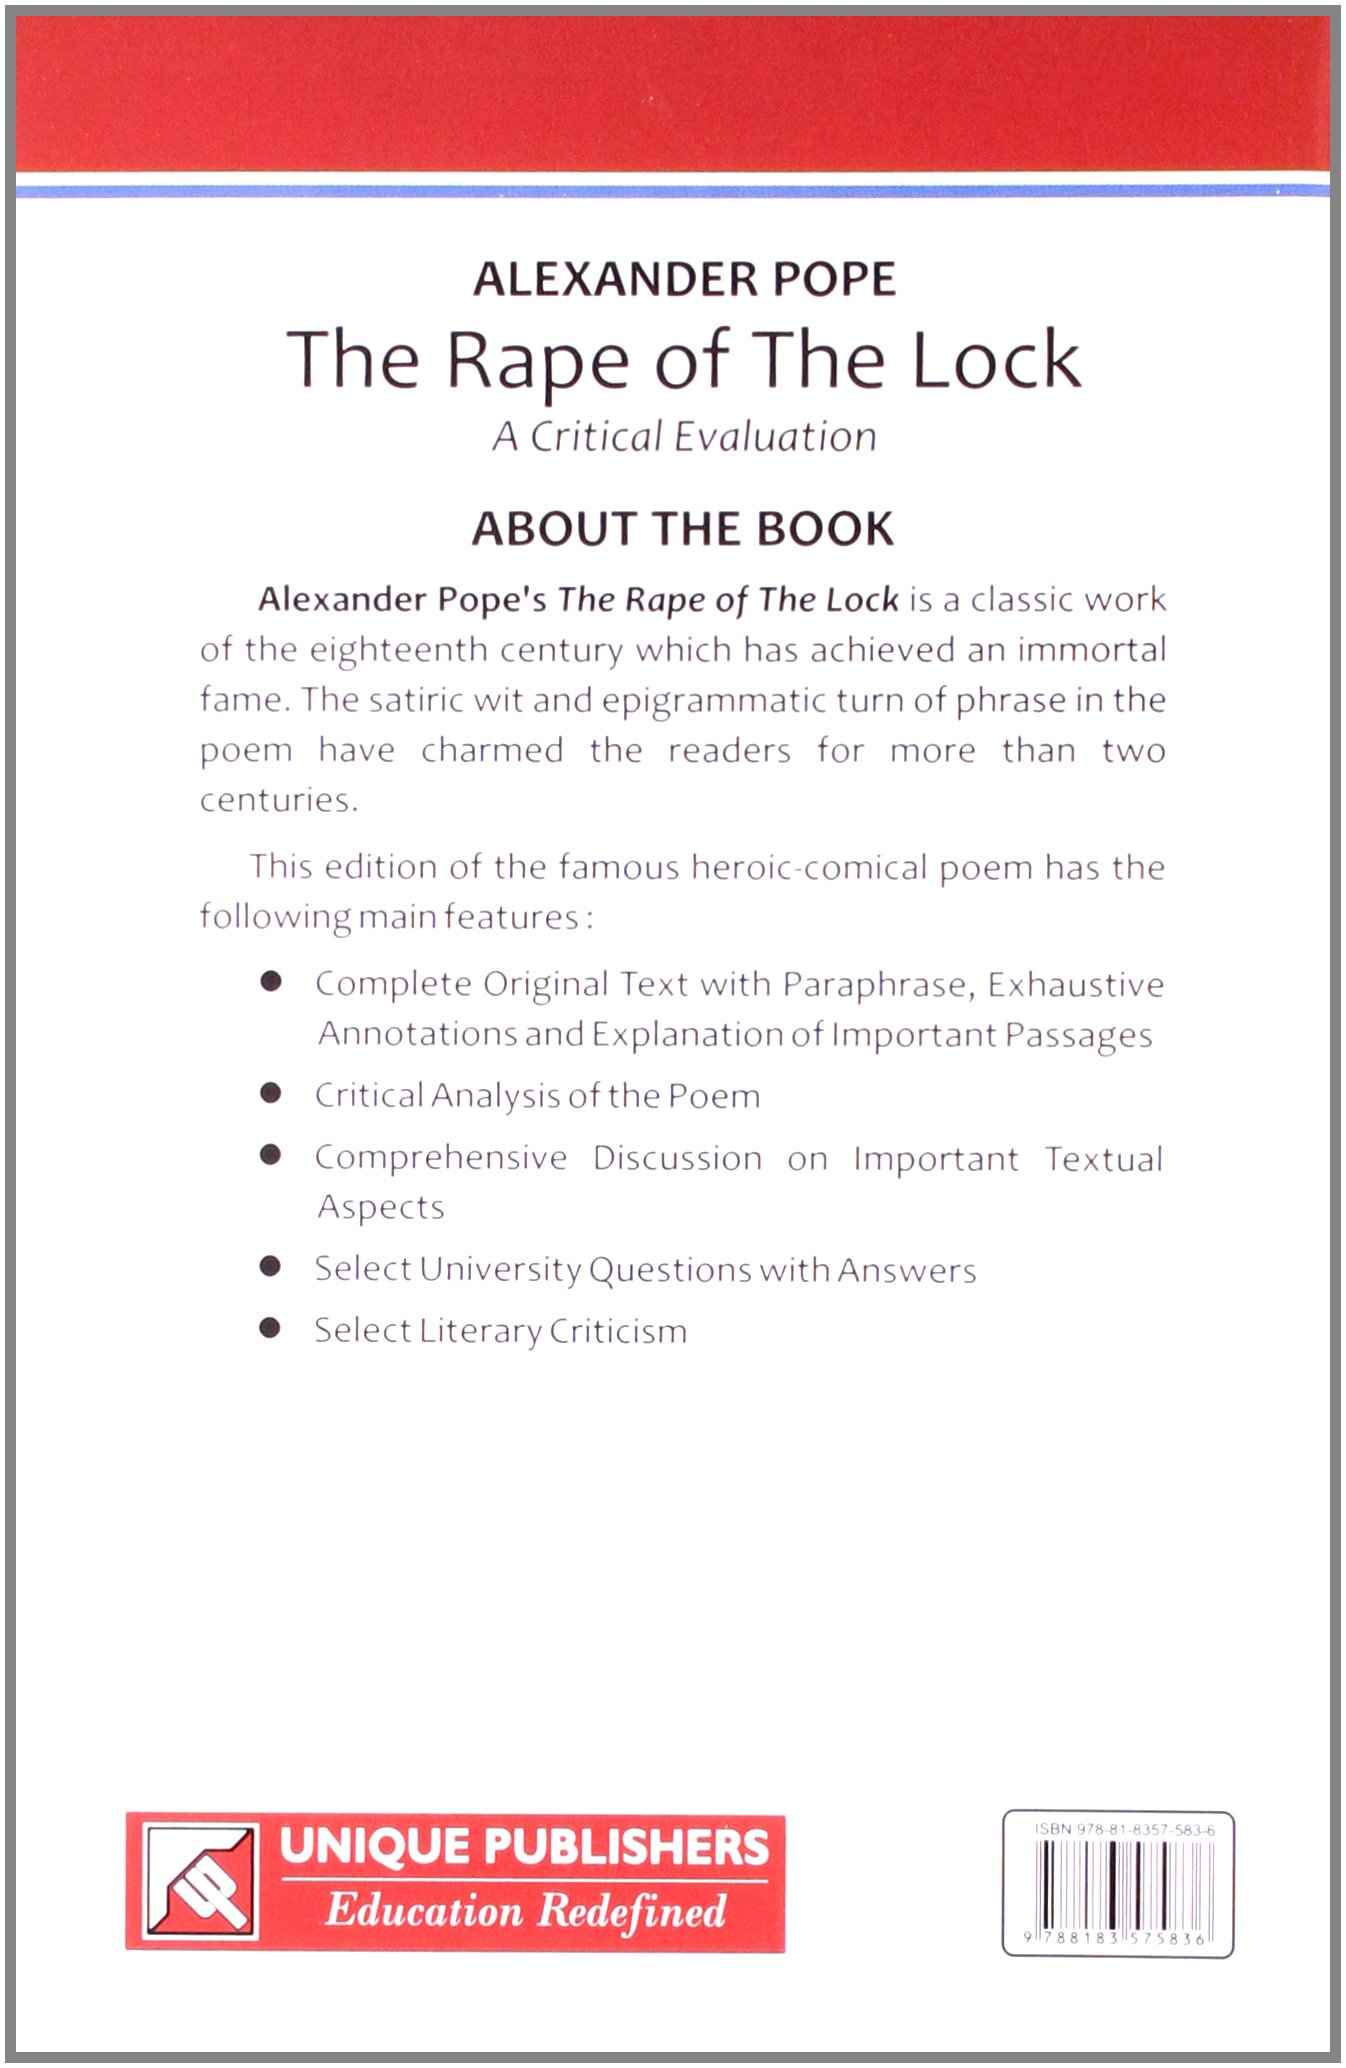 buy alexander pope the rape of the lock book online at low prices buy alexander pope the rape of the lock book online at low prices in alexander pope the rape of the lock reviews ratings in